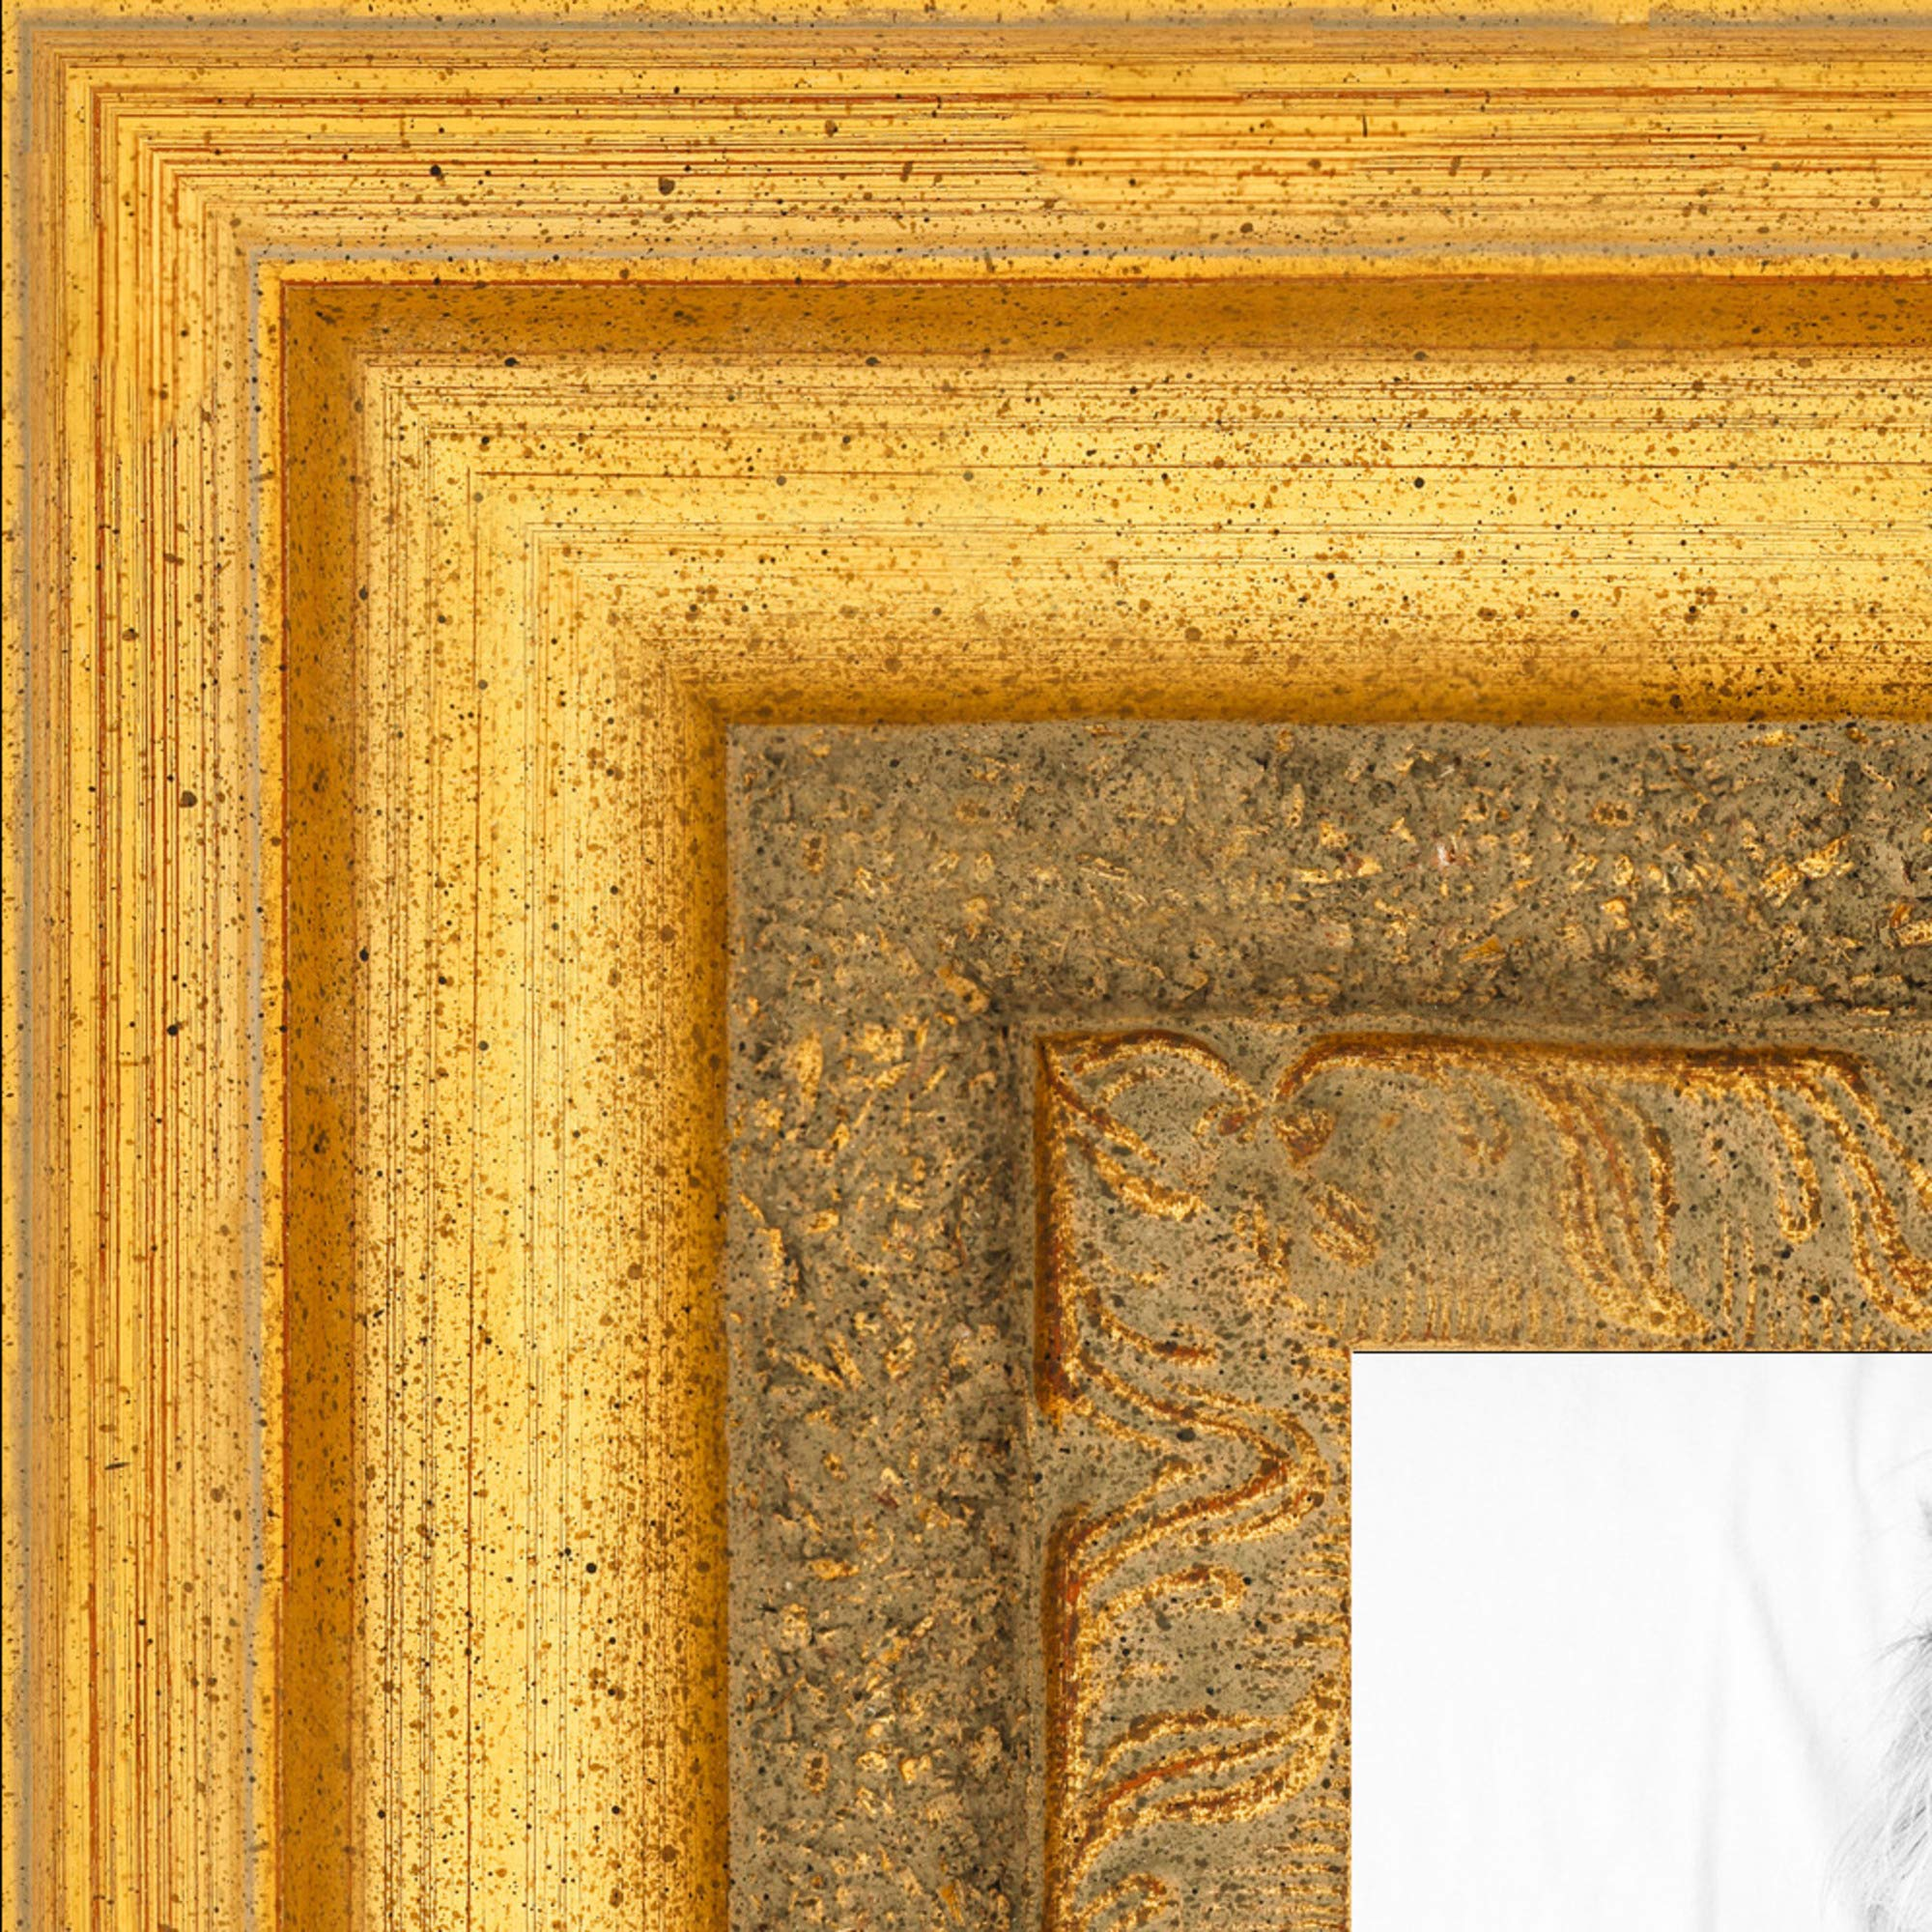 """ArtToFrames 9x10 Inch Gold Picture Frame, This 3.5"""" Custom Wood Poster Frame is Traditional (Real) Gold Leaf, for Your Art or Photos - Comes with Regular Glass, 2WOM1099-9x10"""